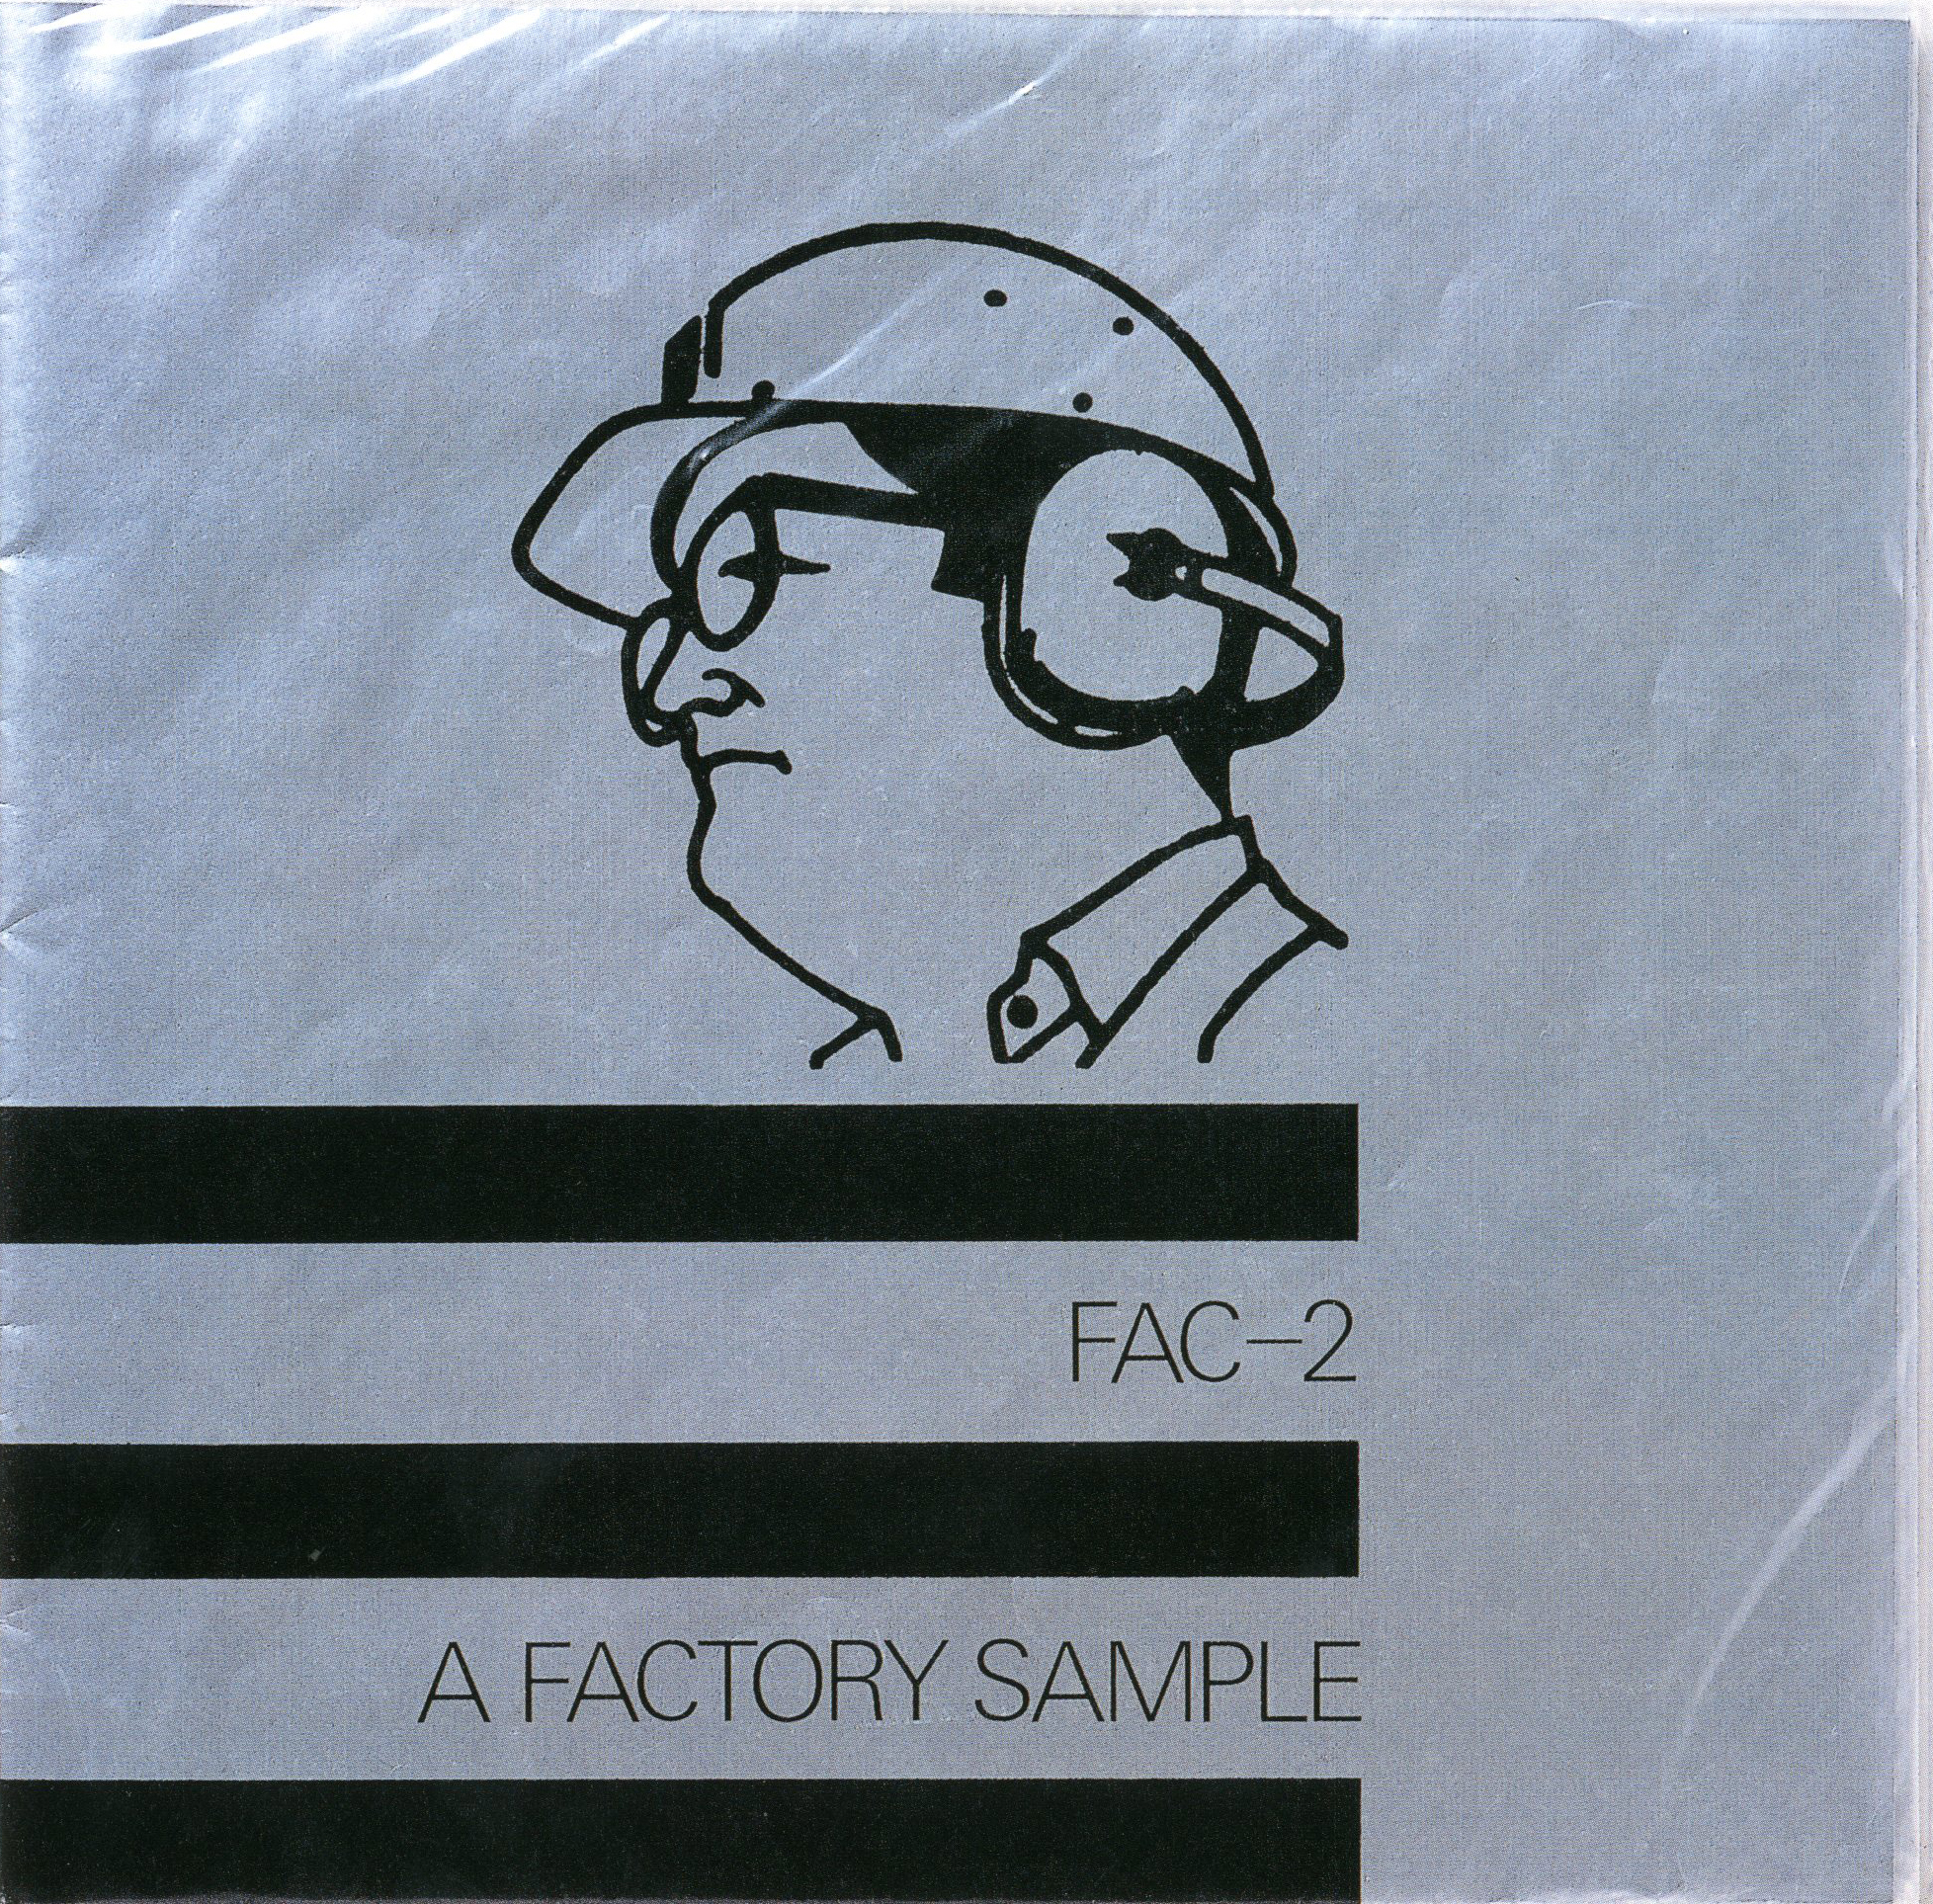 a factory sample001